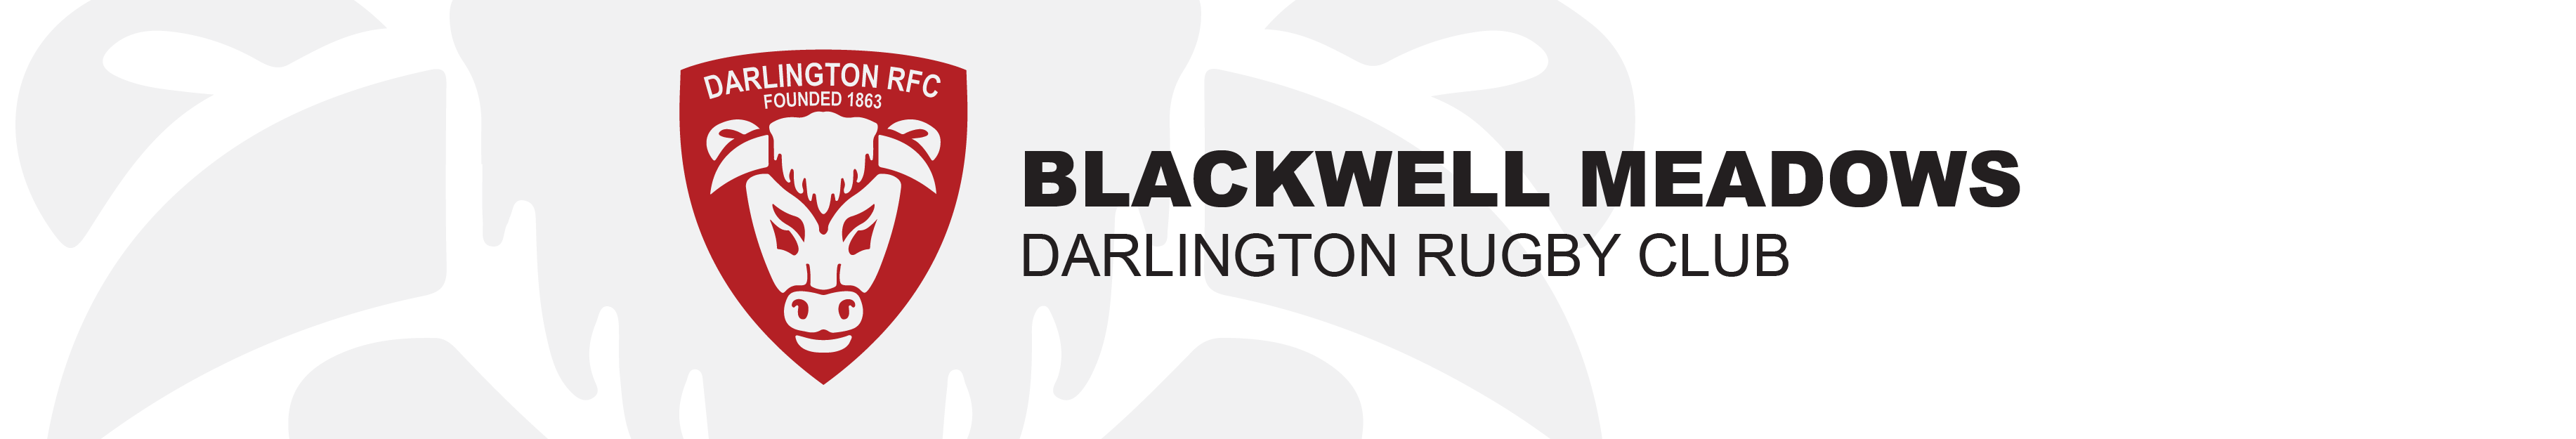 Blackwell Meadows Home of Darlington R.F.C. Logo